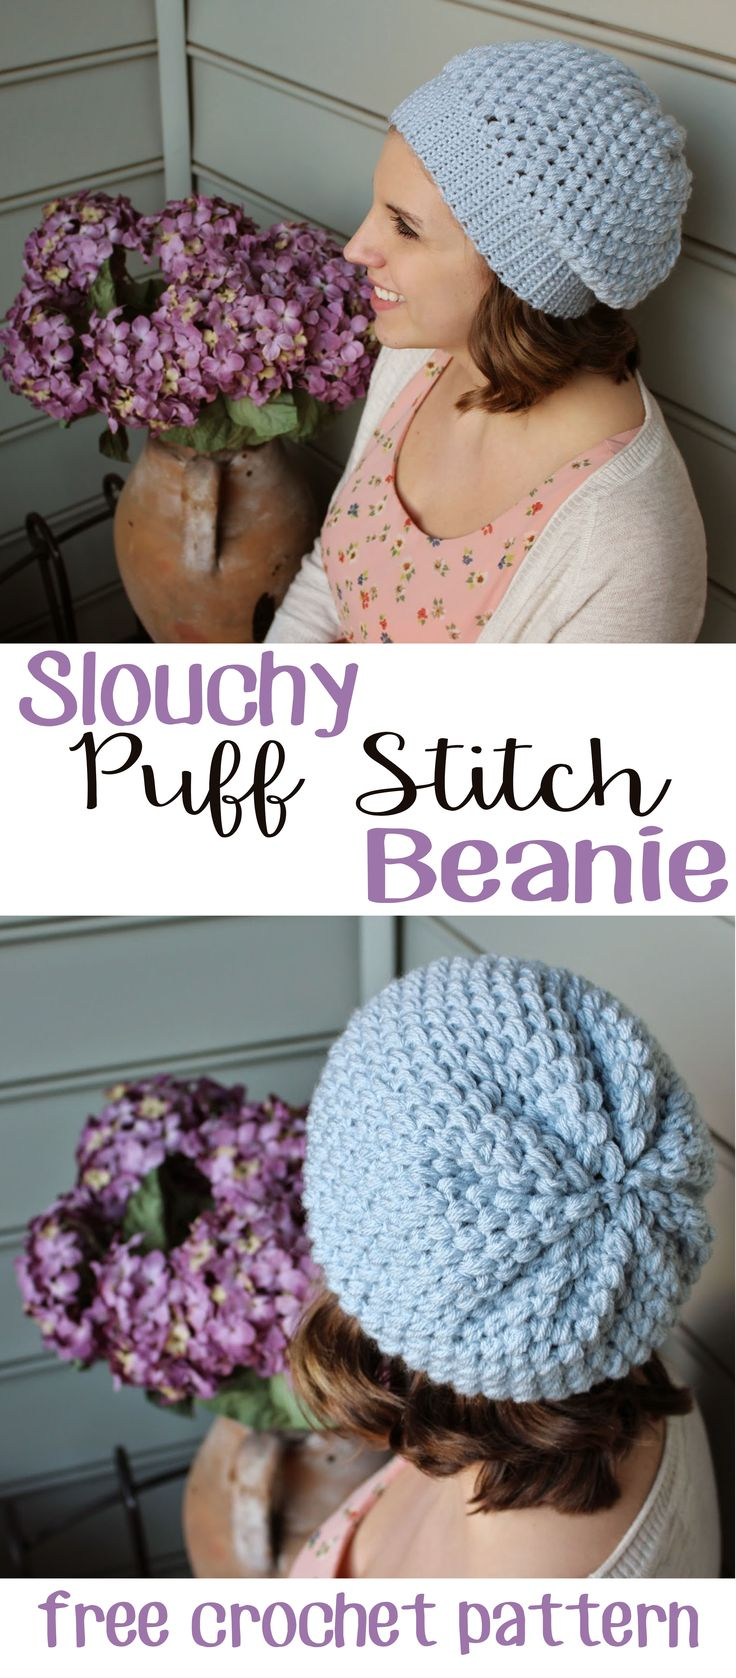 Diy crochet 6 petal puff stitch flower blanket - Easy Slouchy Puff Stitch Beanie Free Crochet Pattern From Sewrella